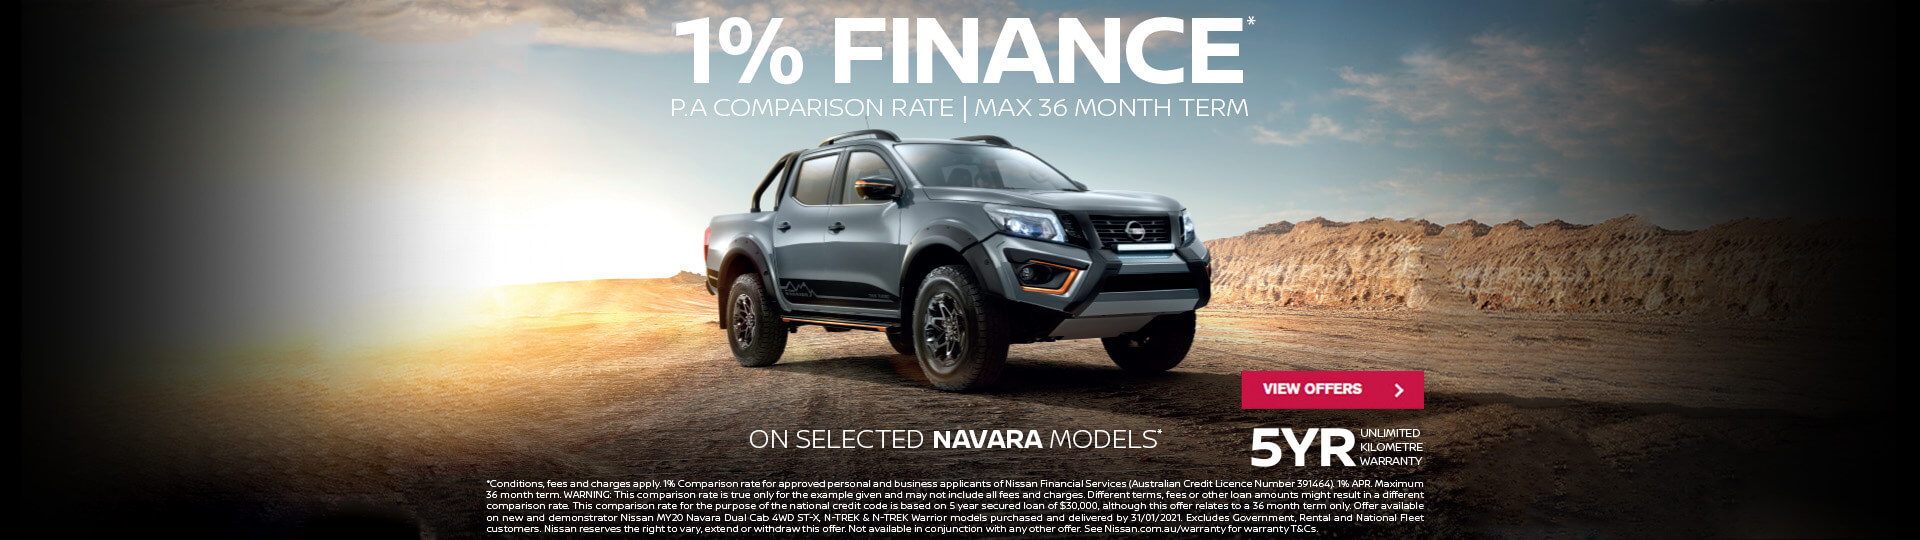 1% Finance available on selected Nissan Navara models